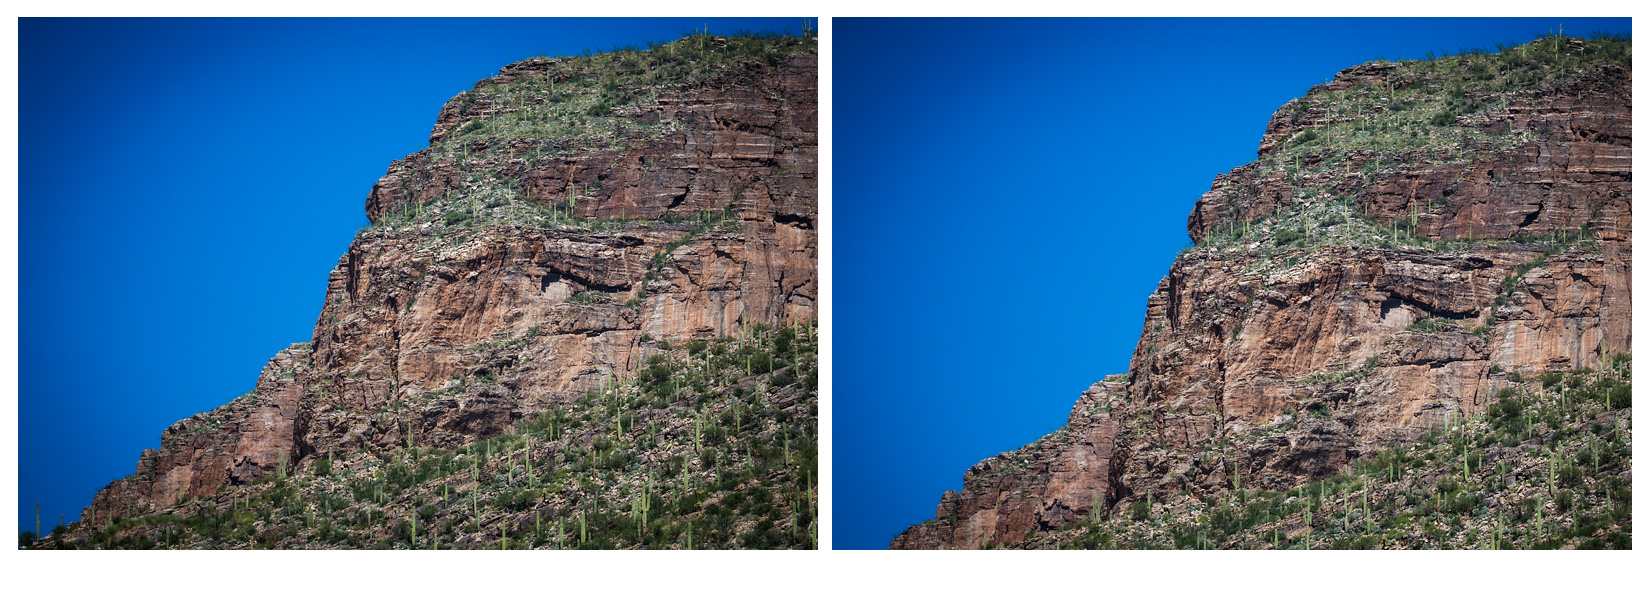 Consider these slightly different crops of the same photograph.  The one on the left has the mountain resolving neatly into the corner while the other leaves open sky.  Which do you prefer?